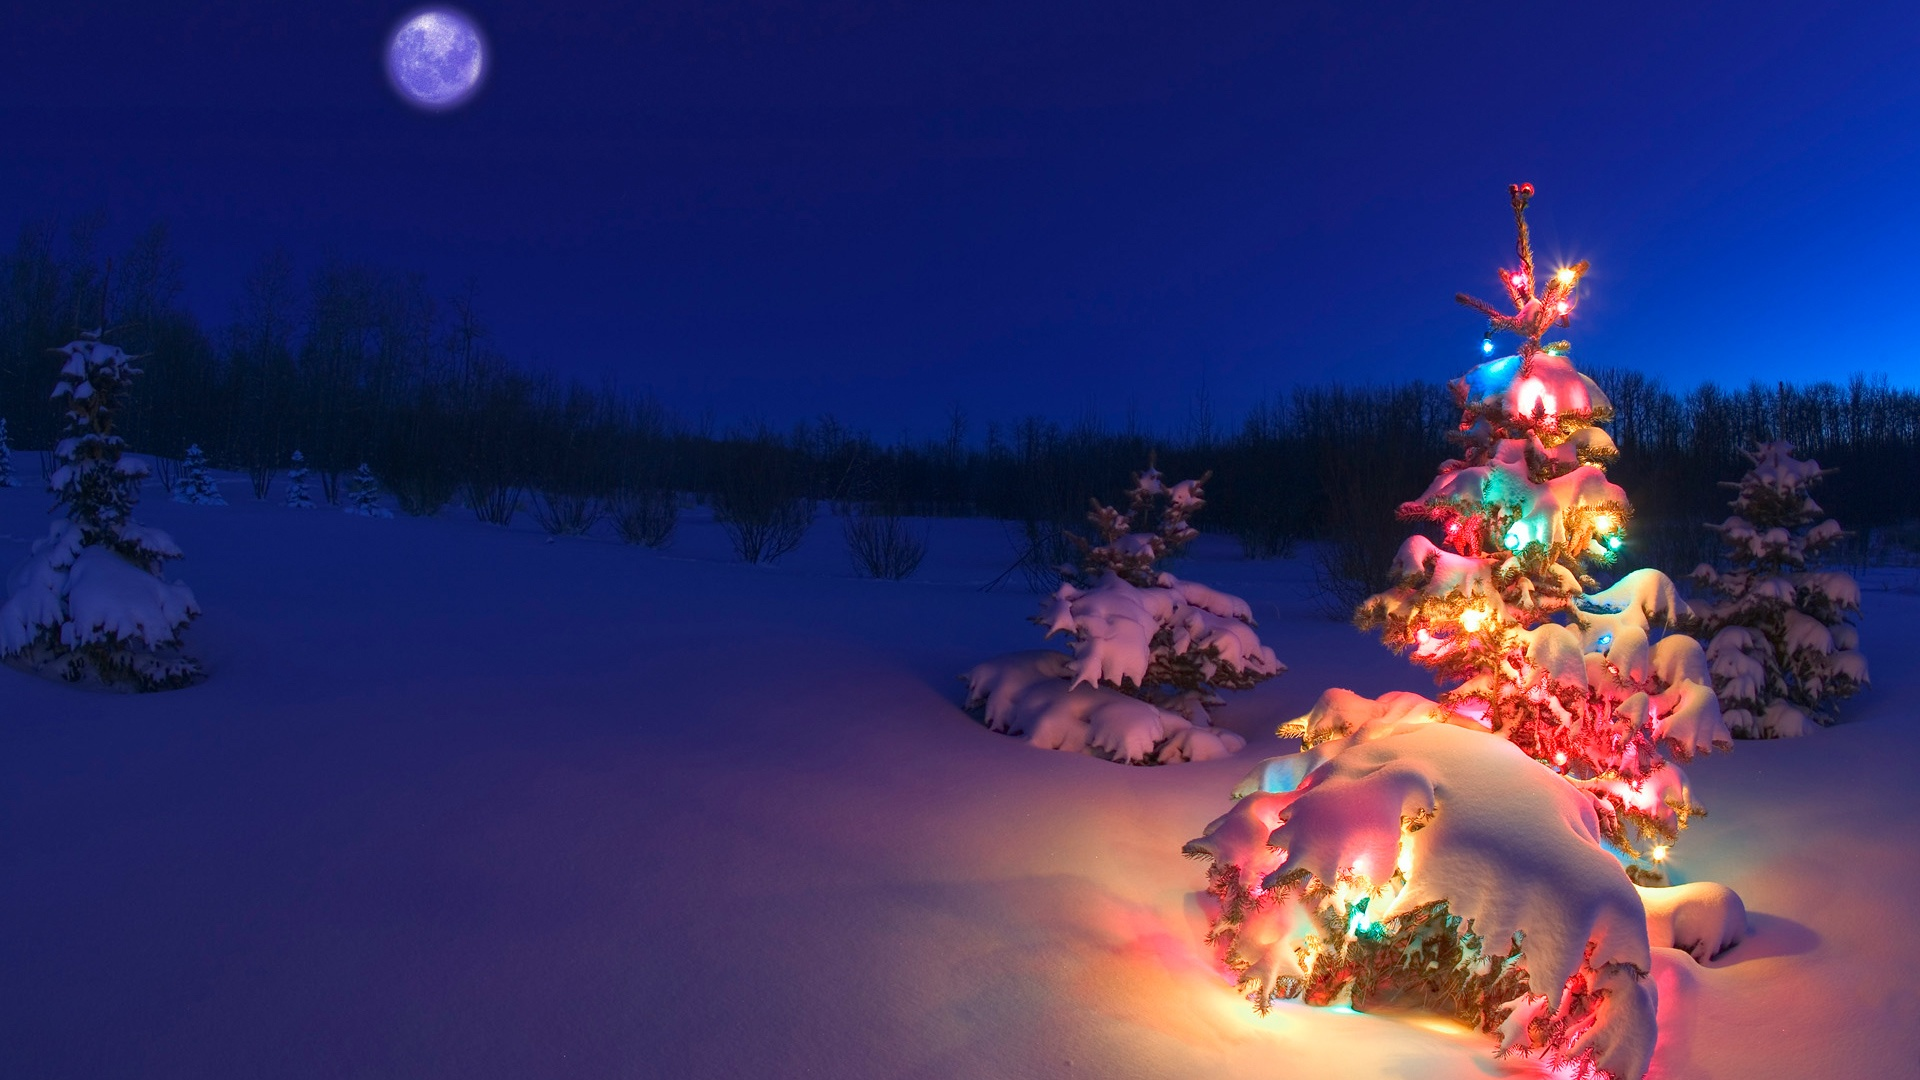 Christmas tree in the snow wallpapers Christmas tree in the snow 1920x1080